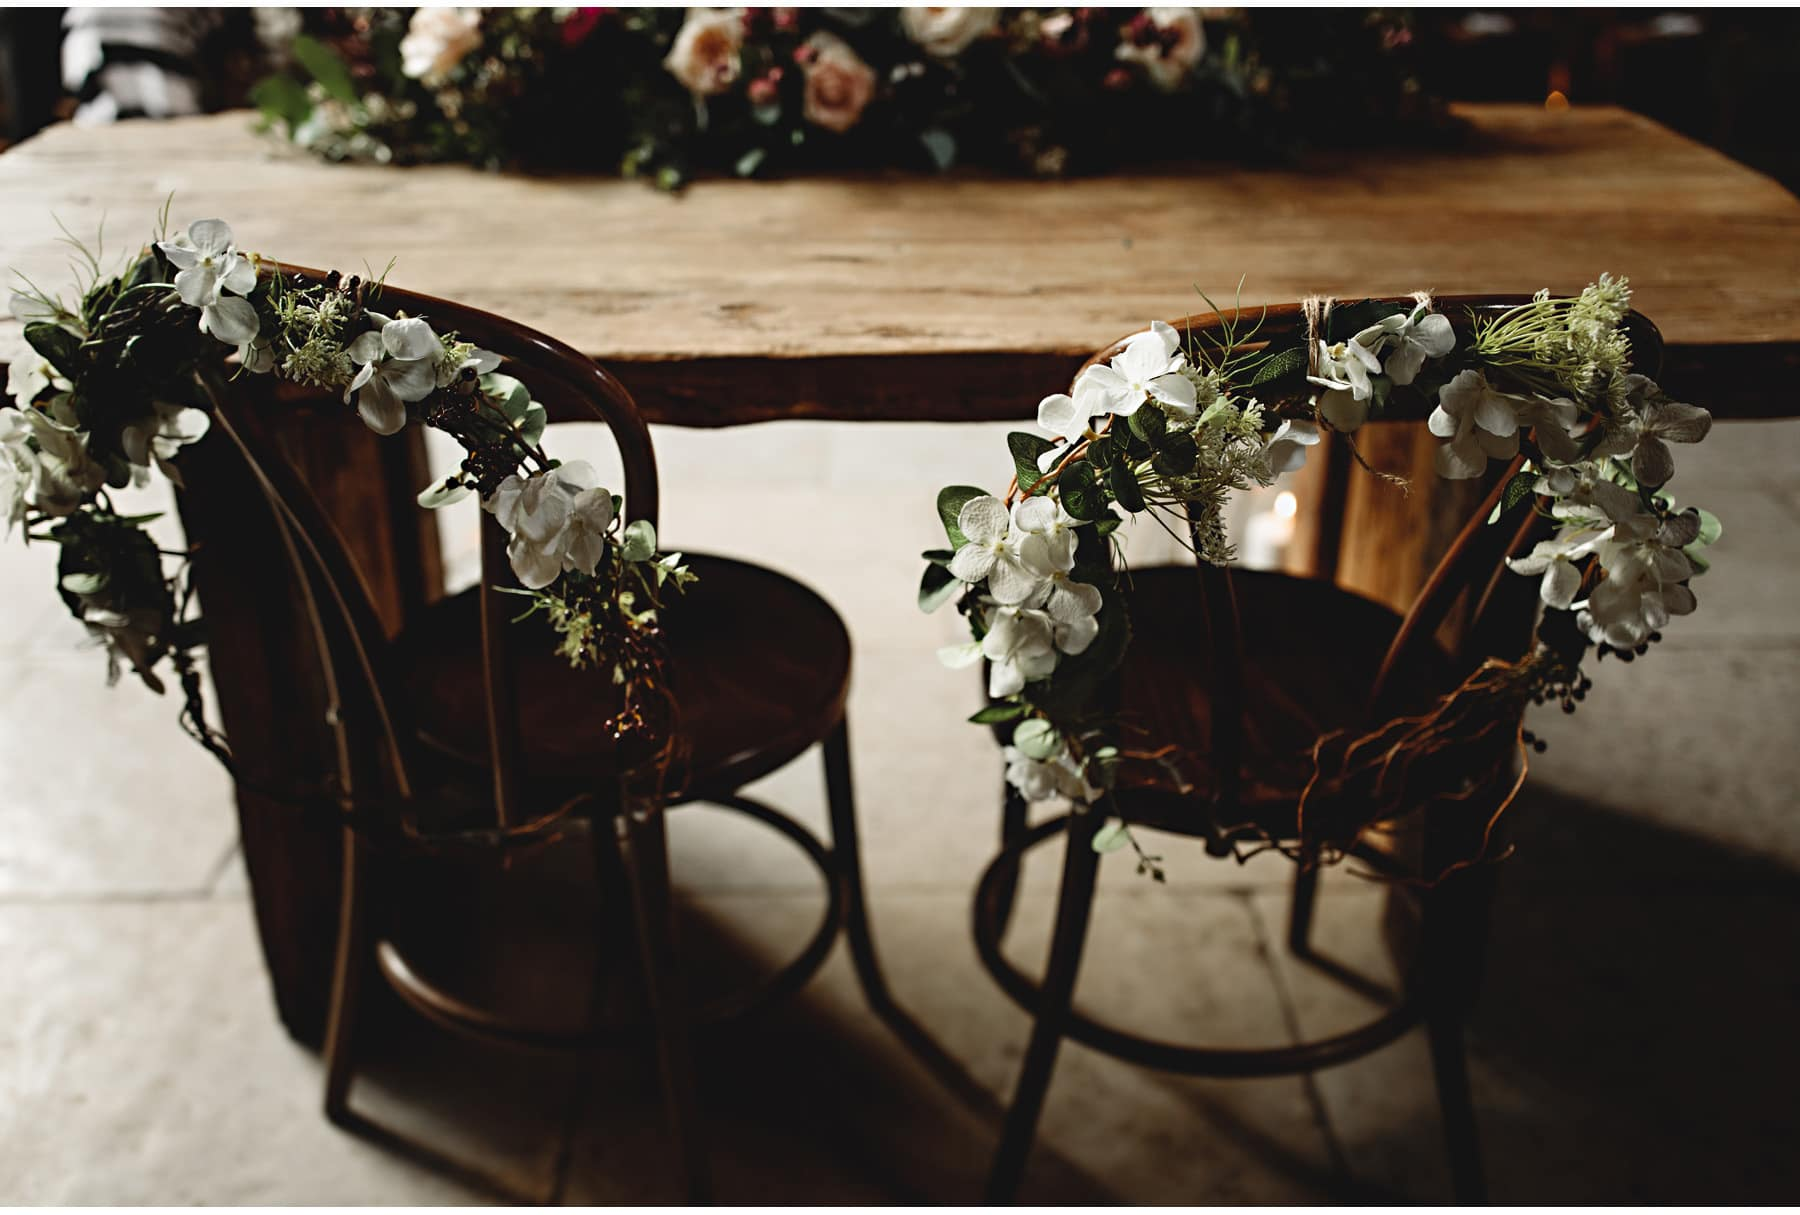 the bride & groom's chairs for the ceremony